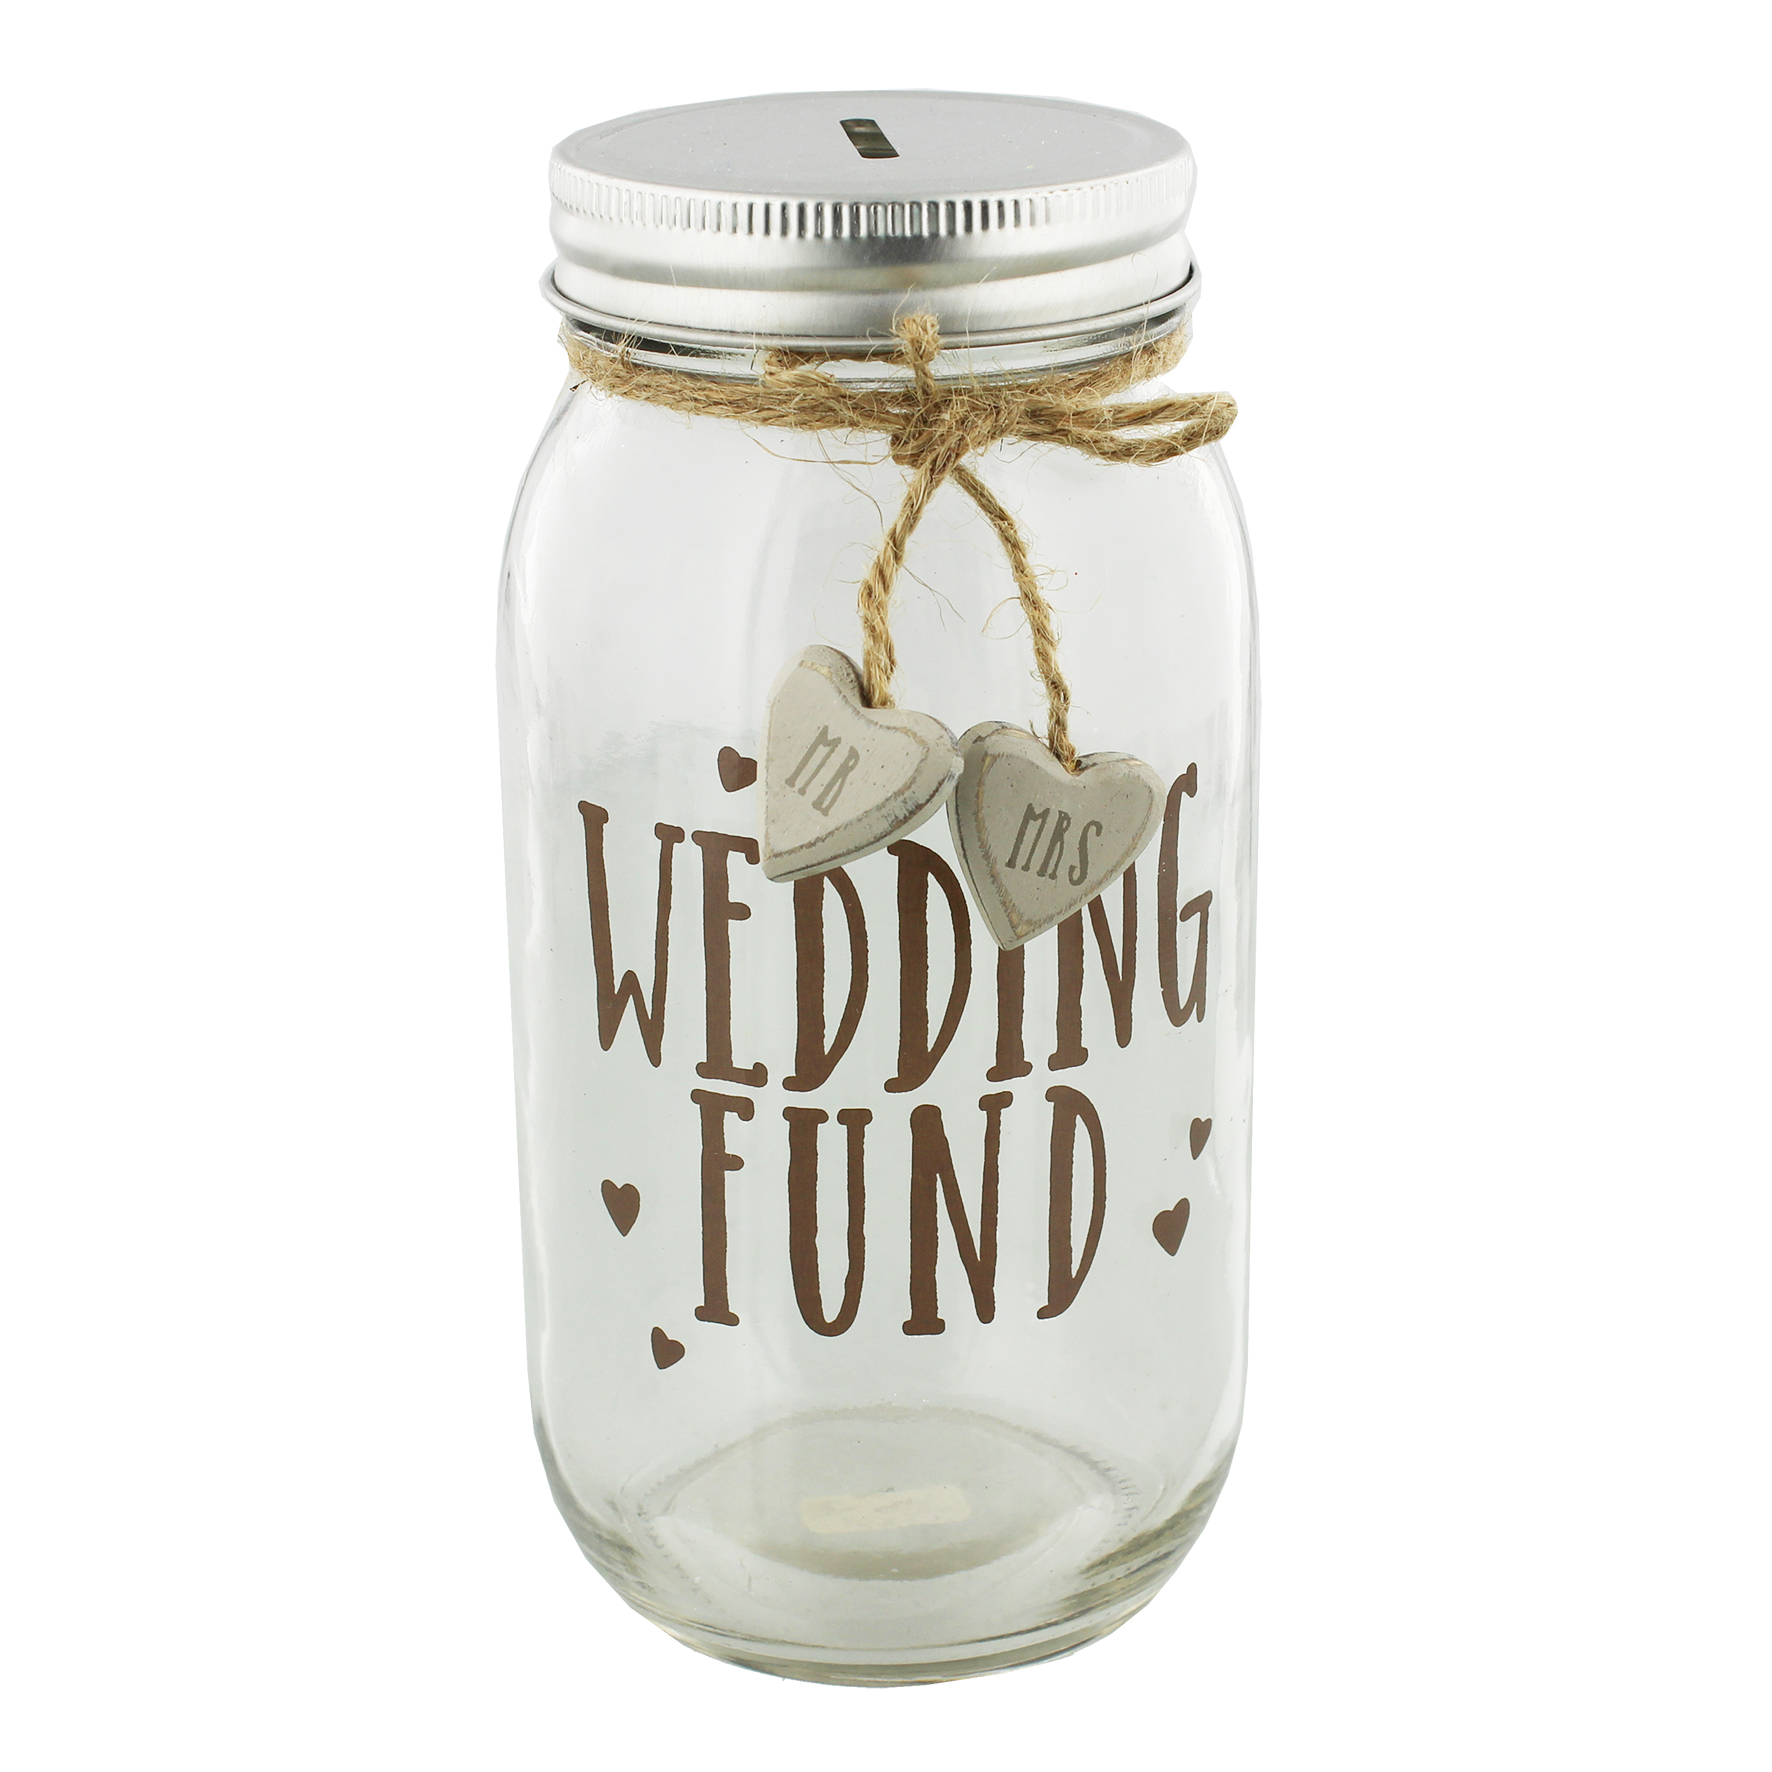 wedding fund glass money jar